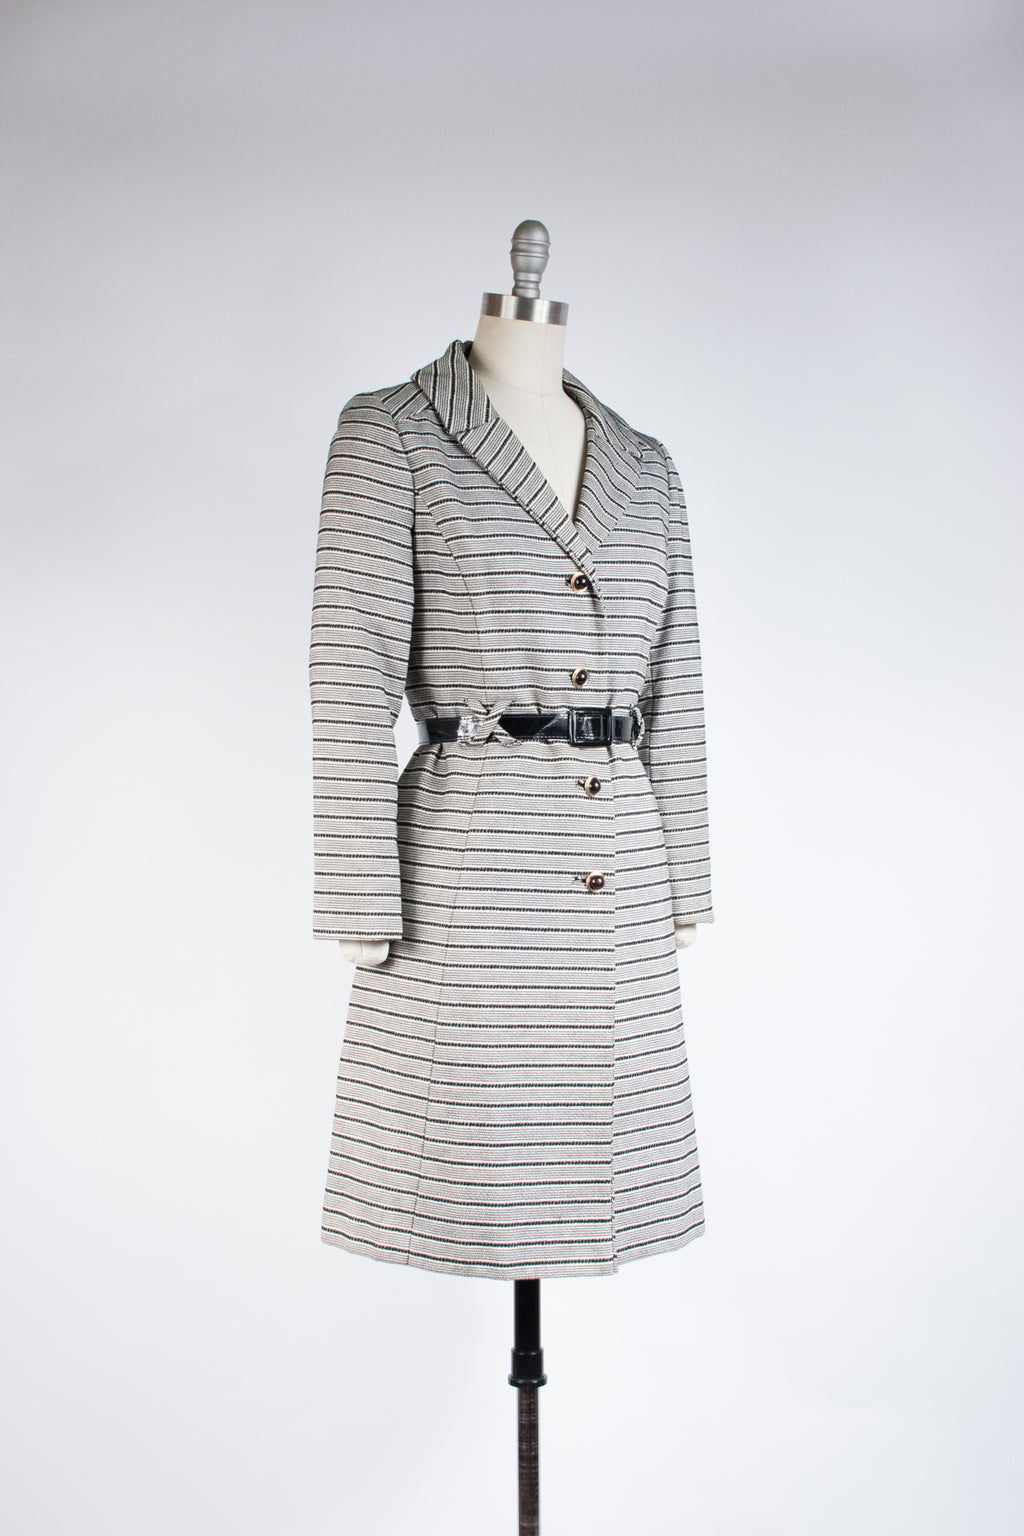 Sassy 1960s Belted Coat in Black and White Stripes